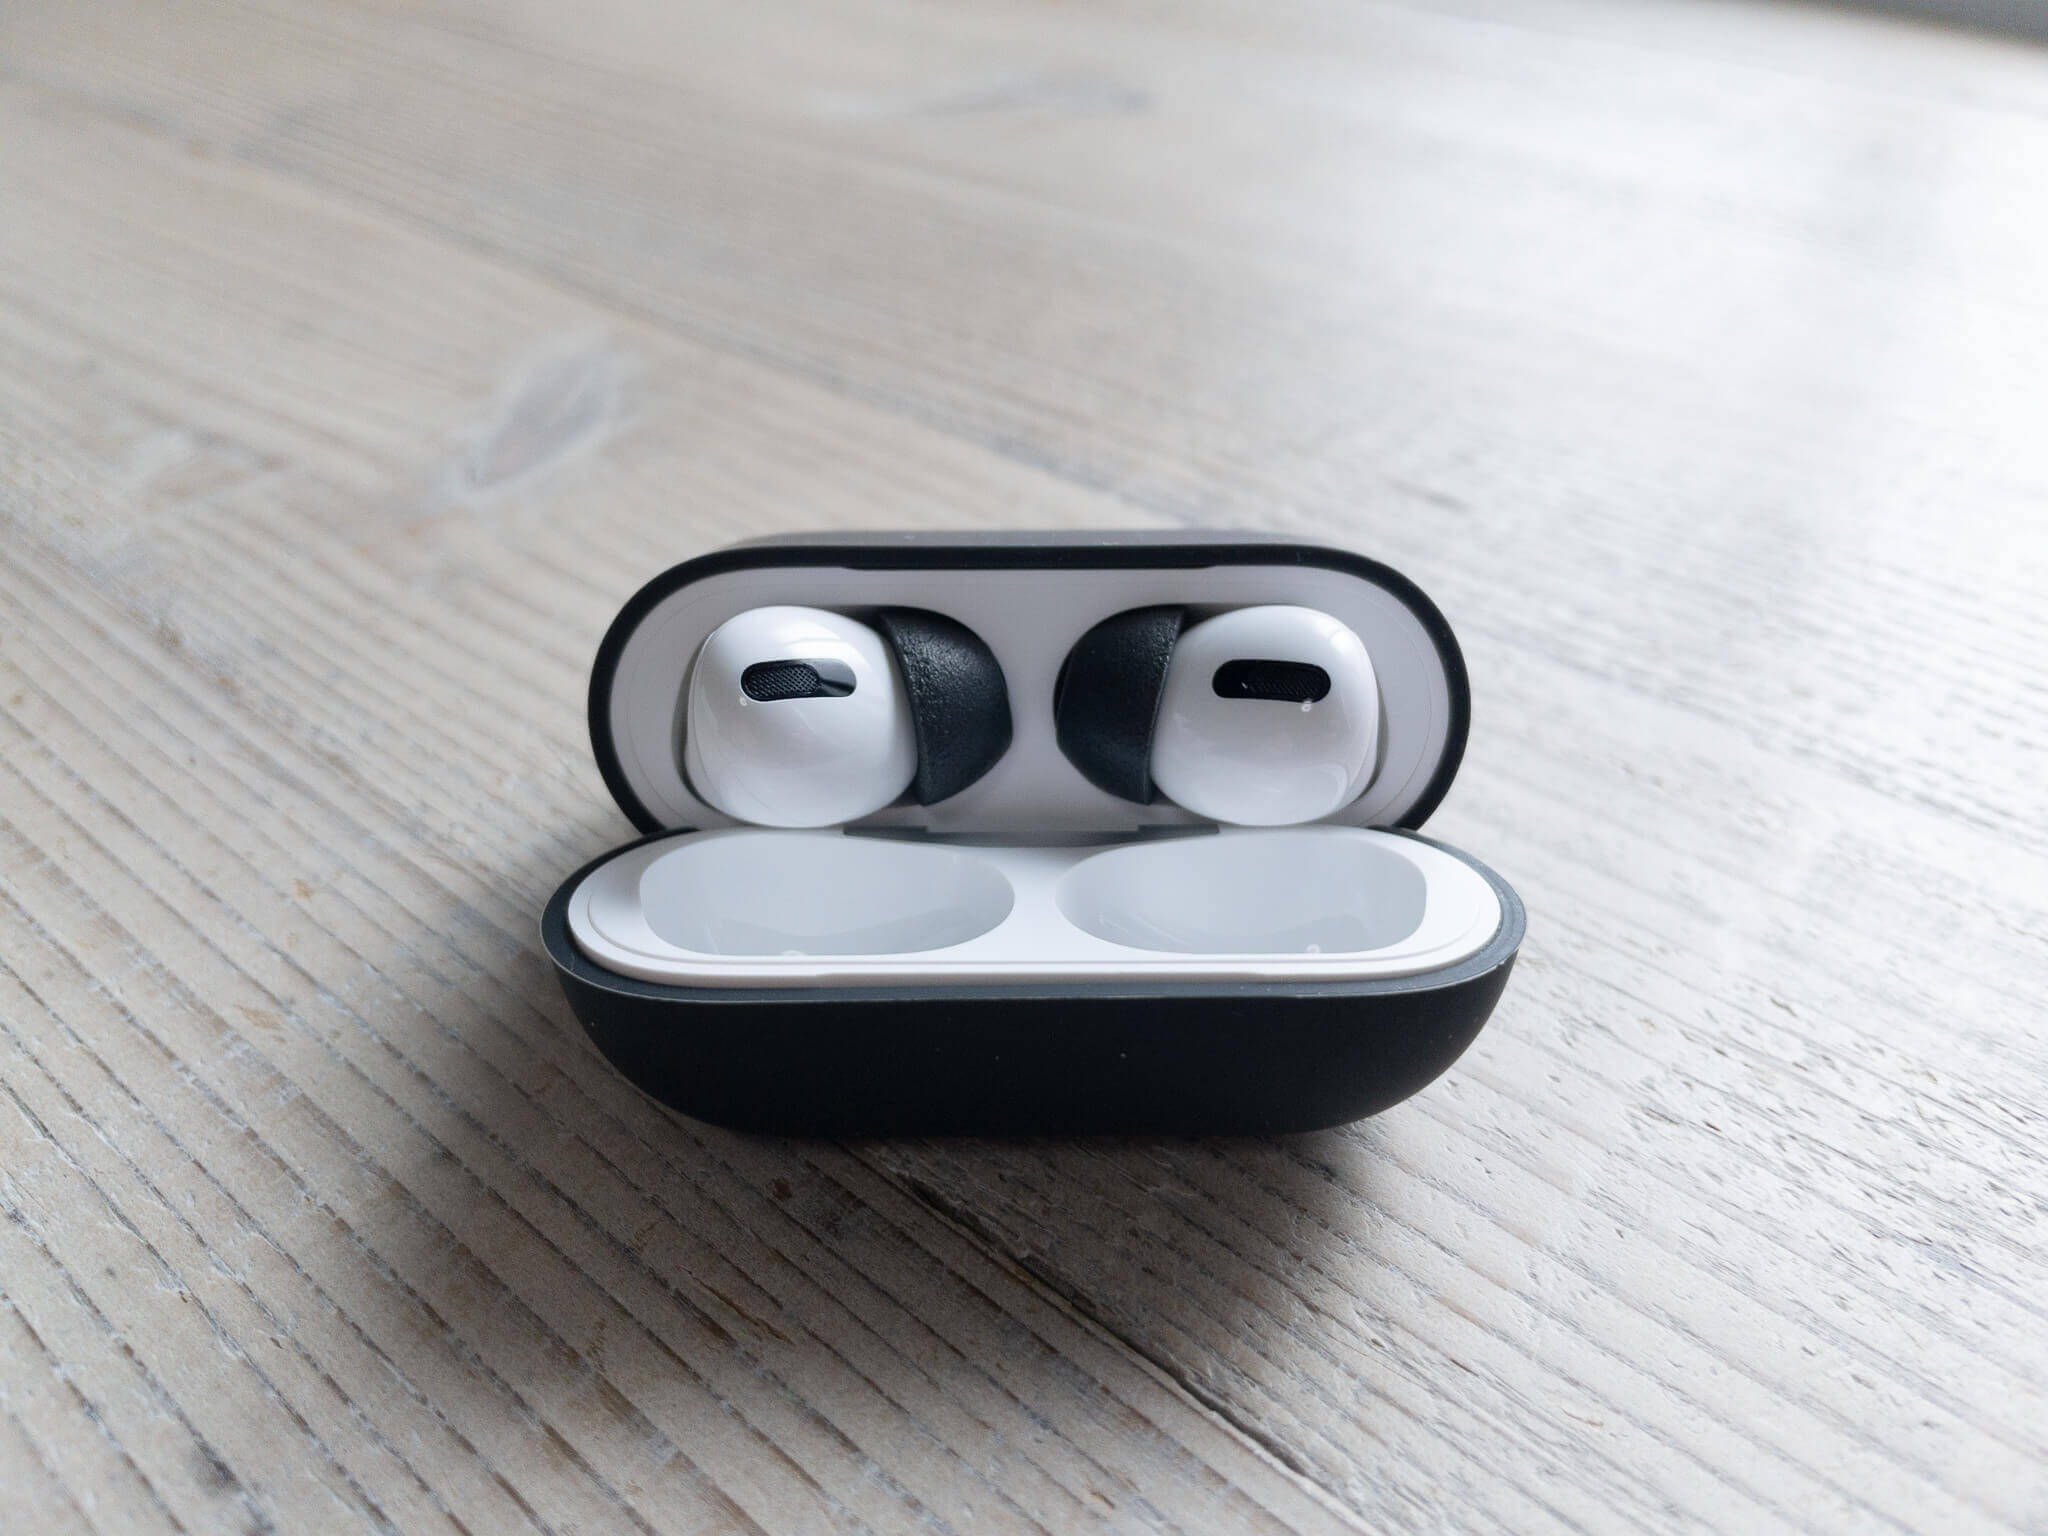 210314 comply airpods pro 15